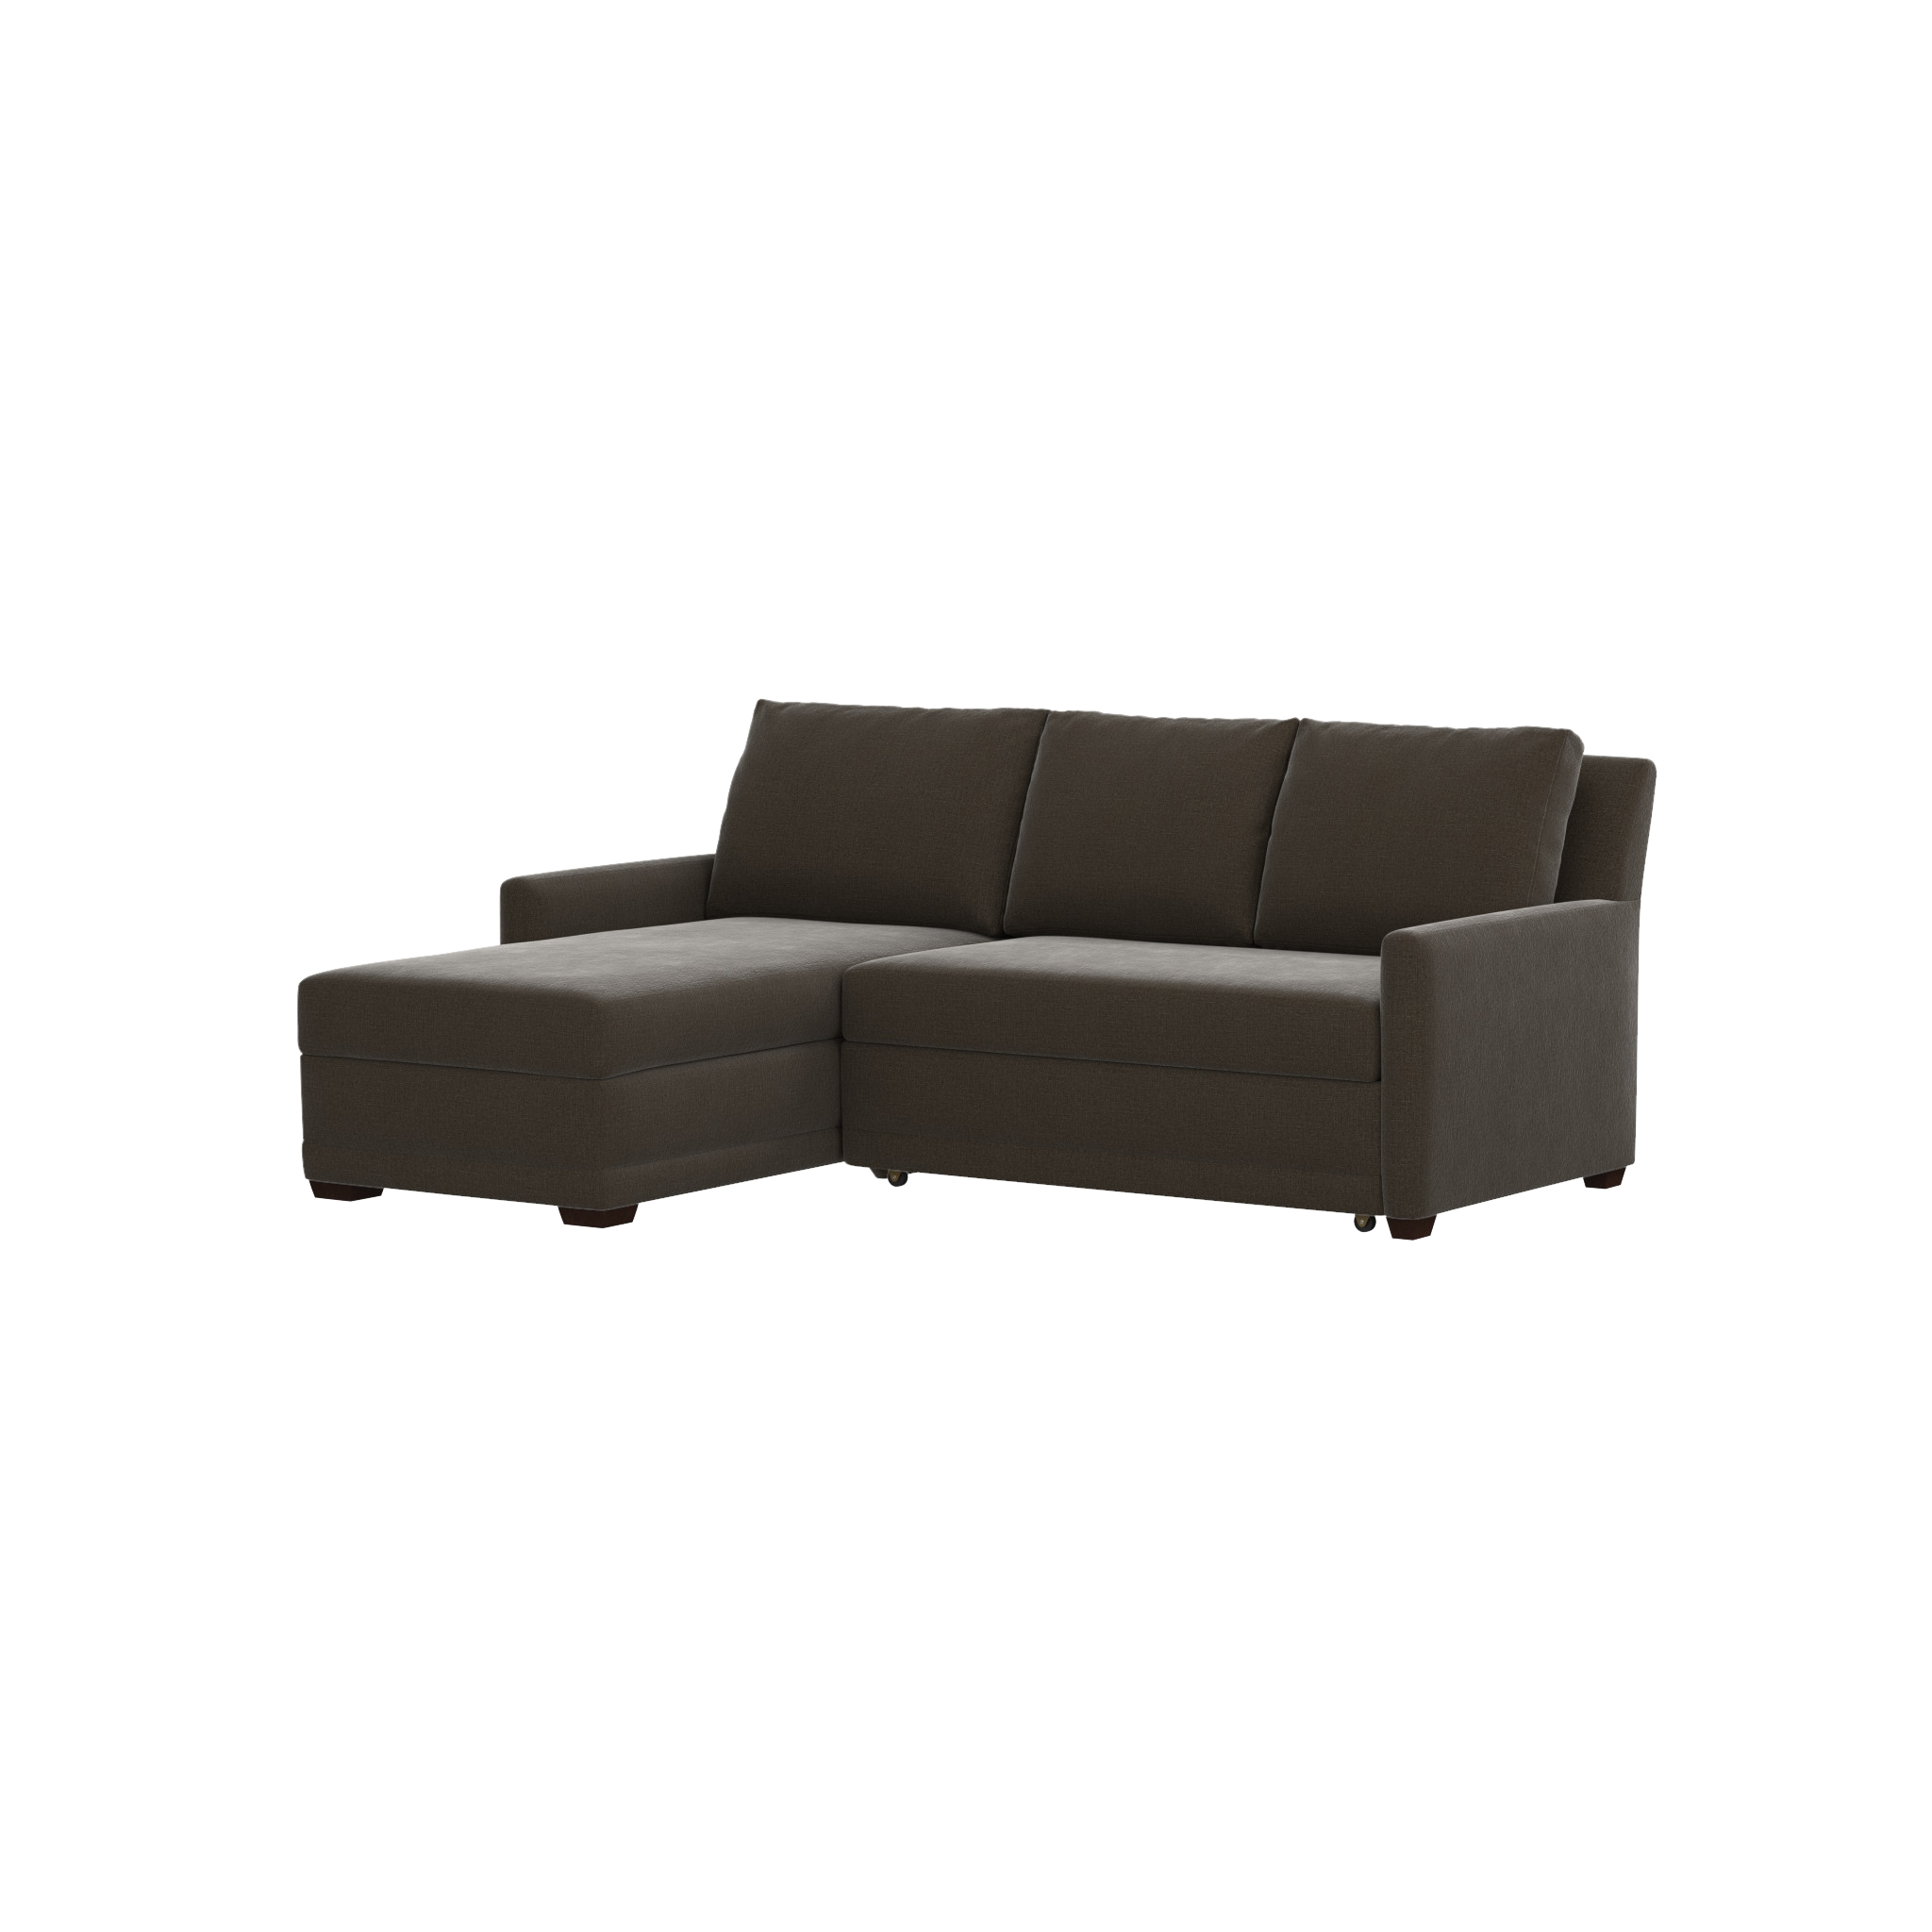 Reston 2 Piece Left Arm Chaise Sleeper Sectional Sofa | Crate And Pertaining To Crate And Barrel Sleeper Sofas (Image 11 of 20)